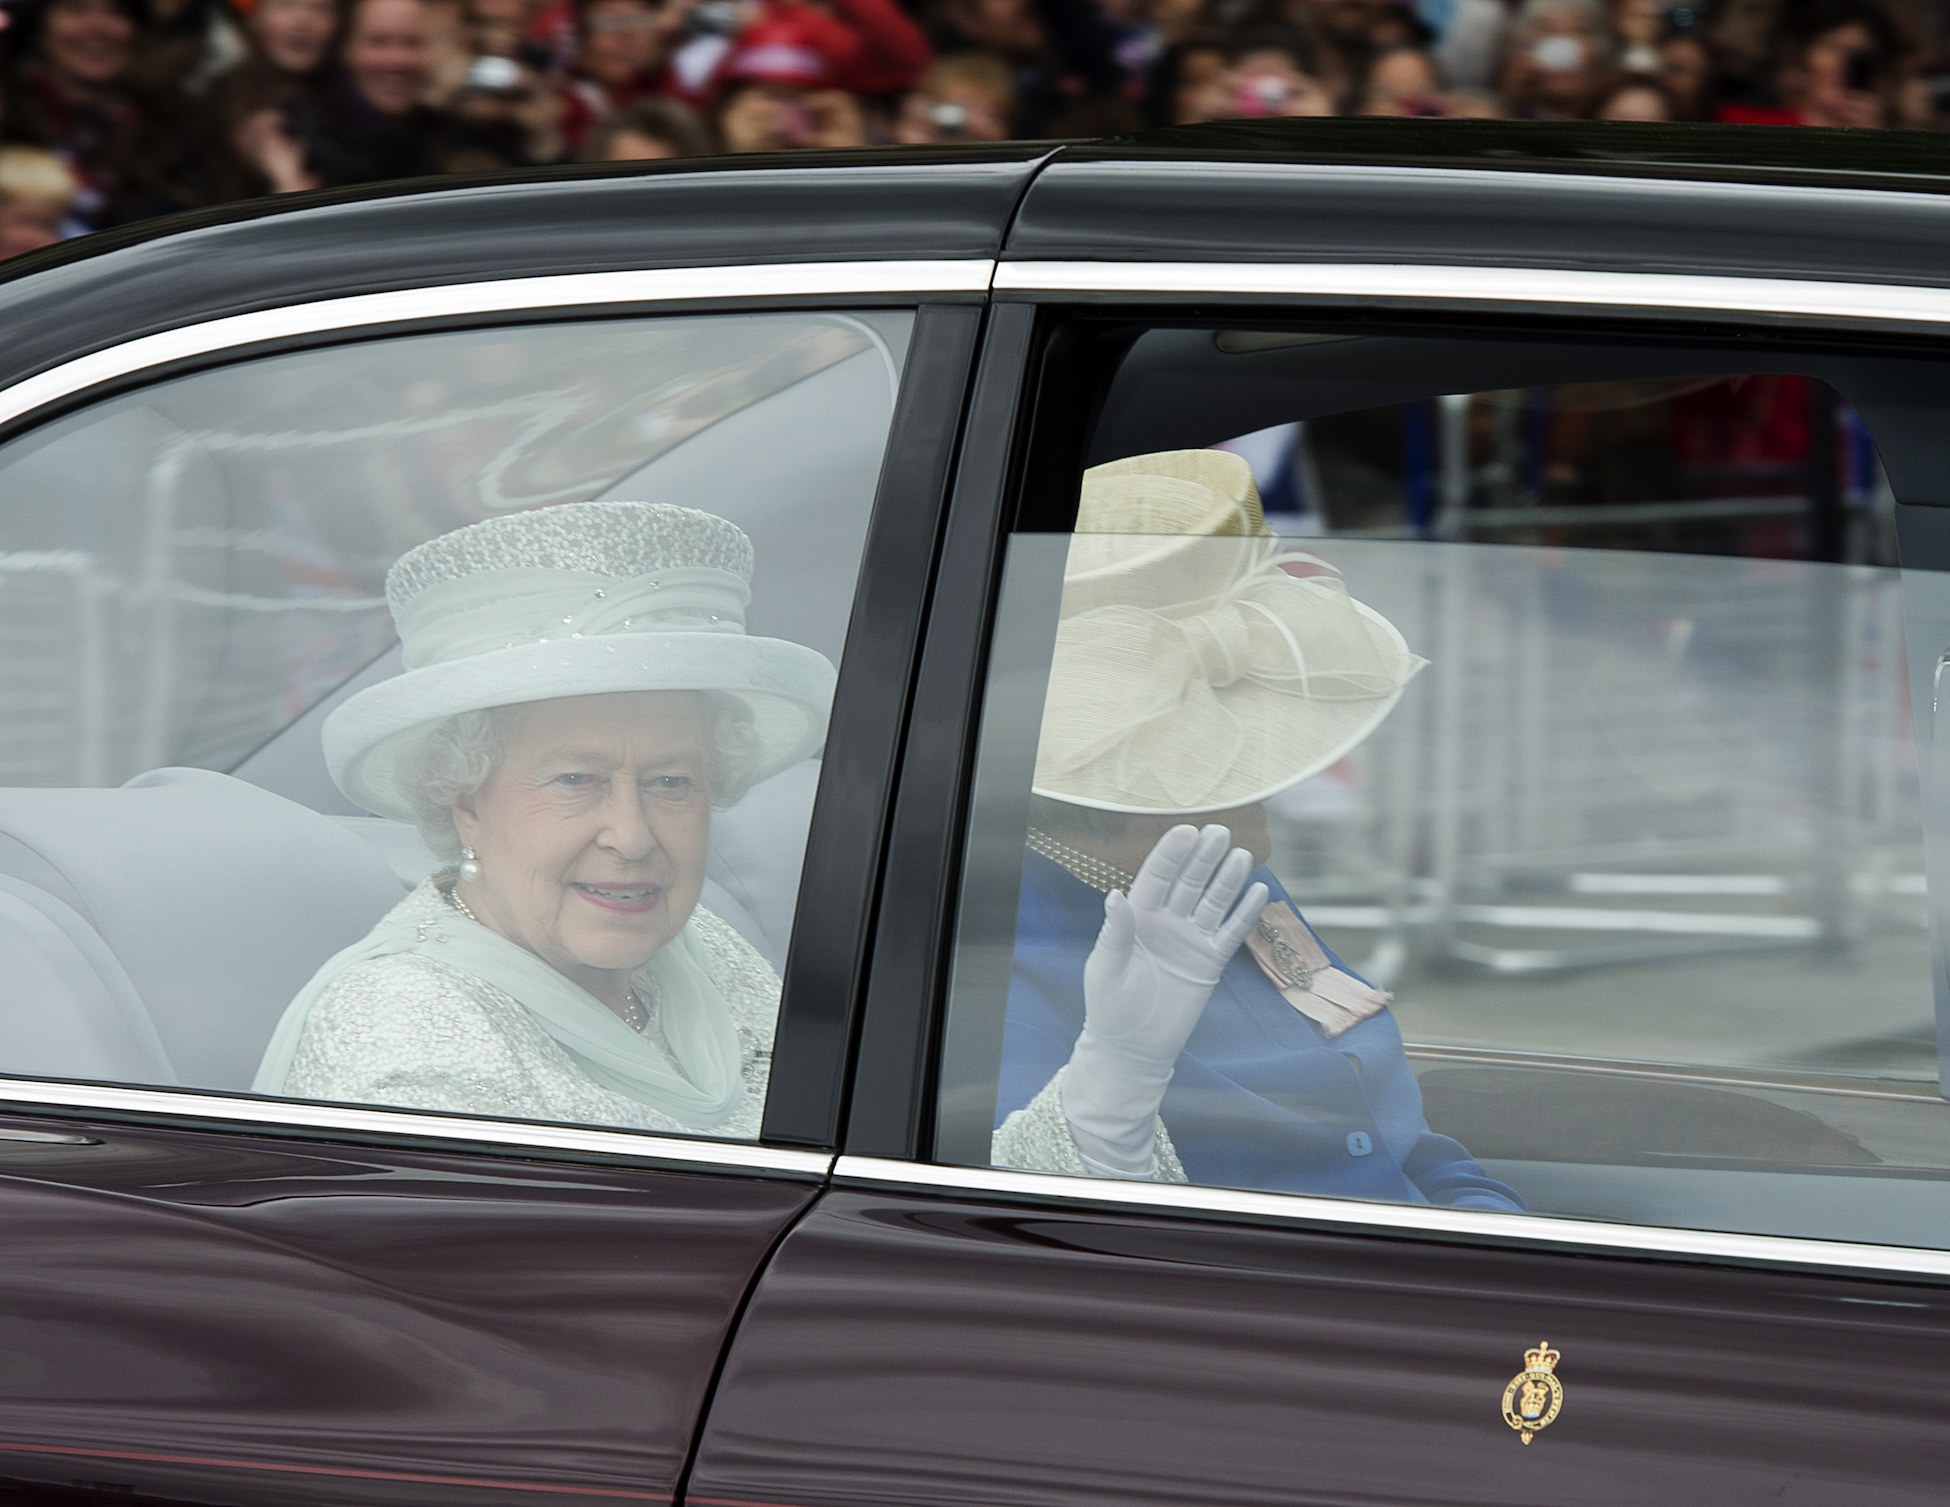 Britain's Queen Elizabeth II waves from the back of her State Limousine accompanied by a Lady in Waiting